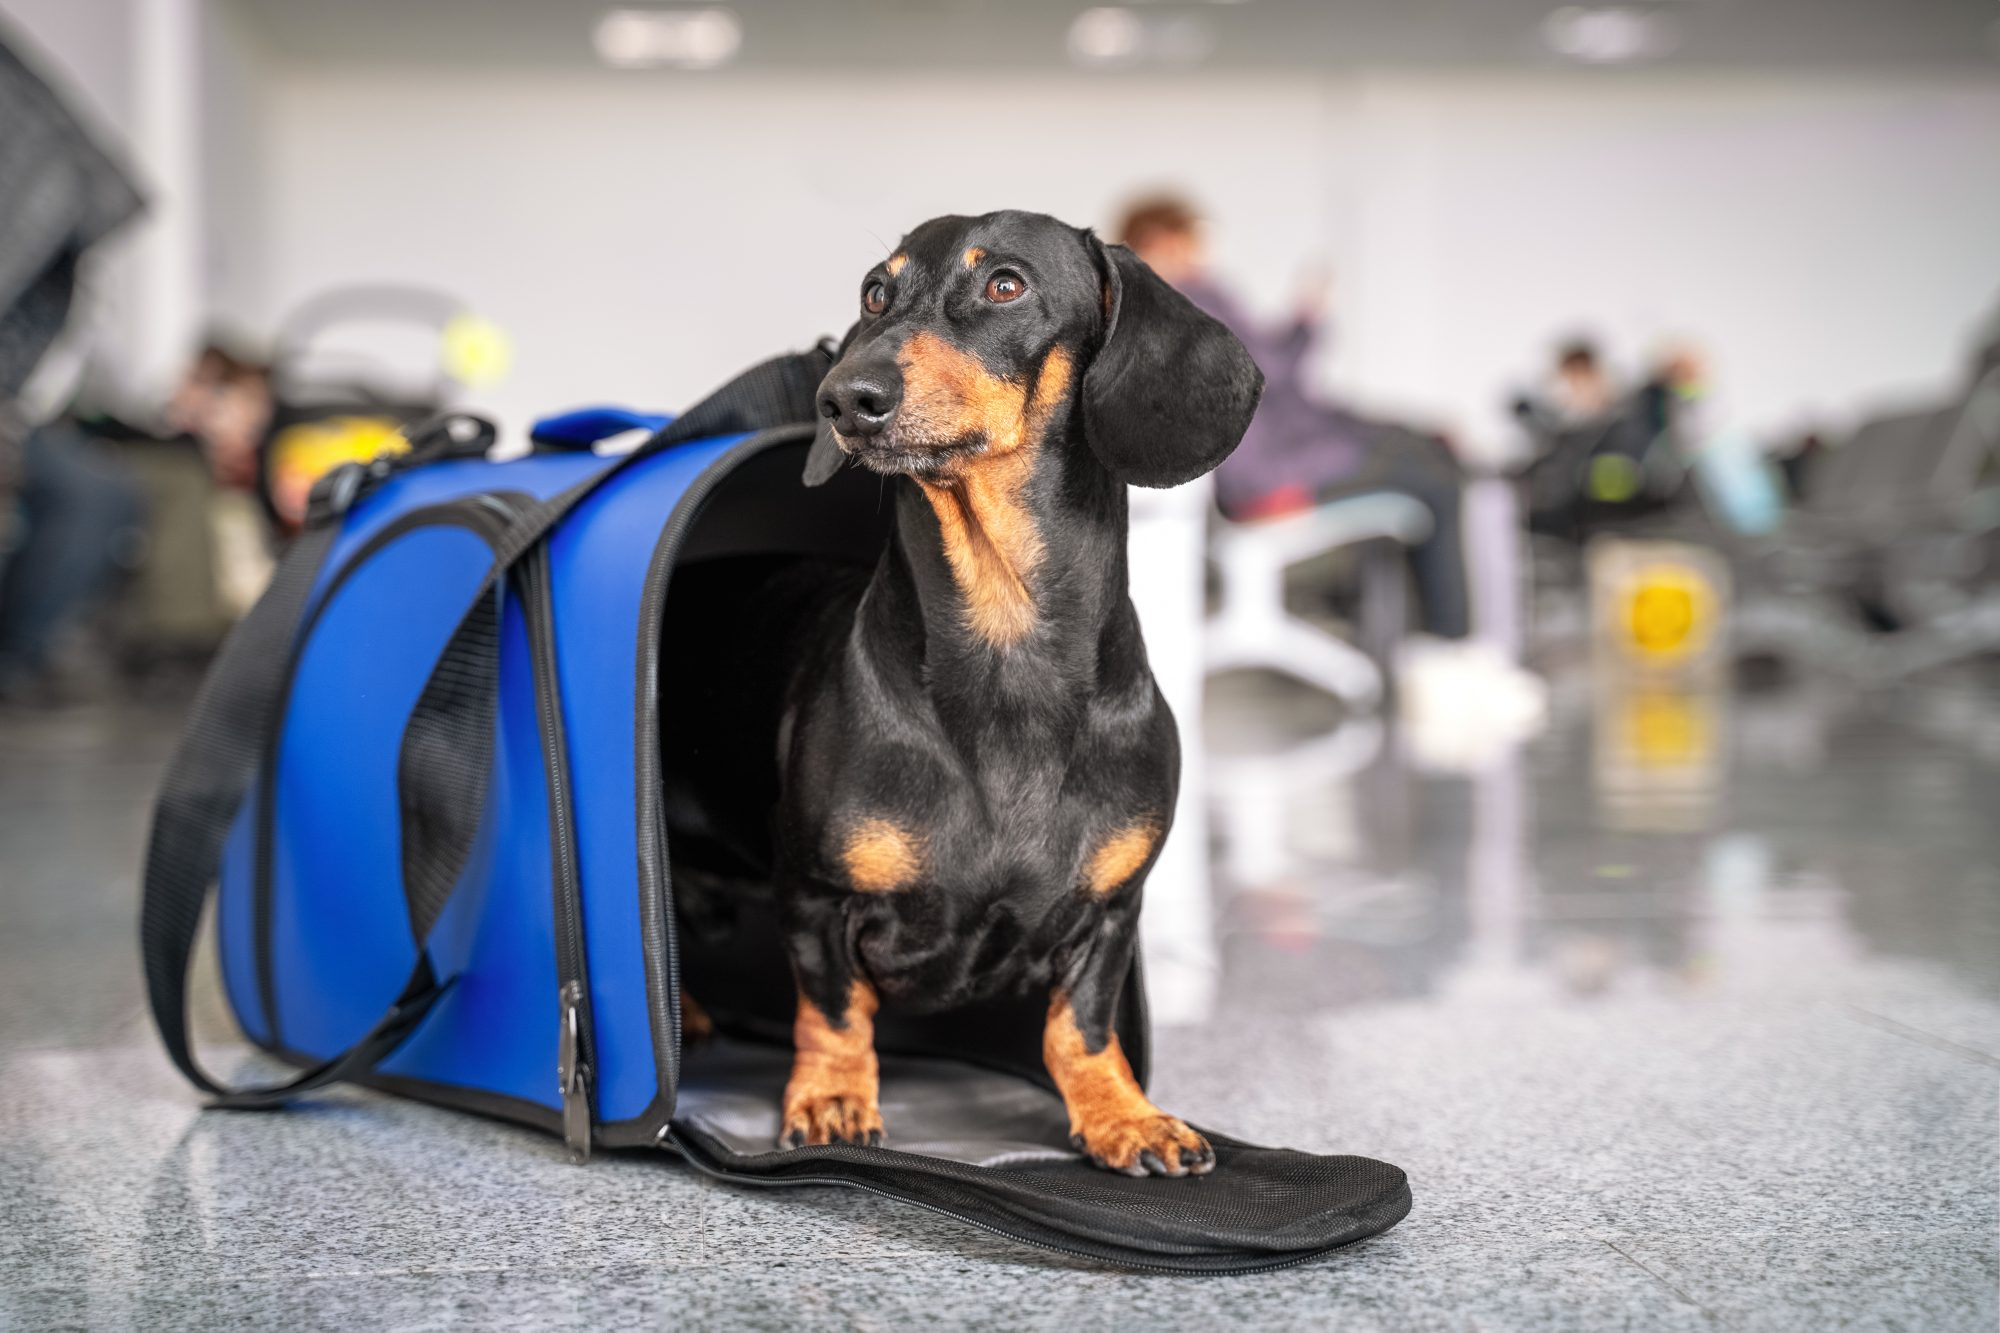 dog in pet carrier at airport